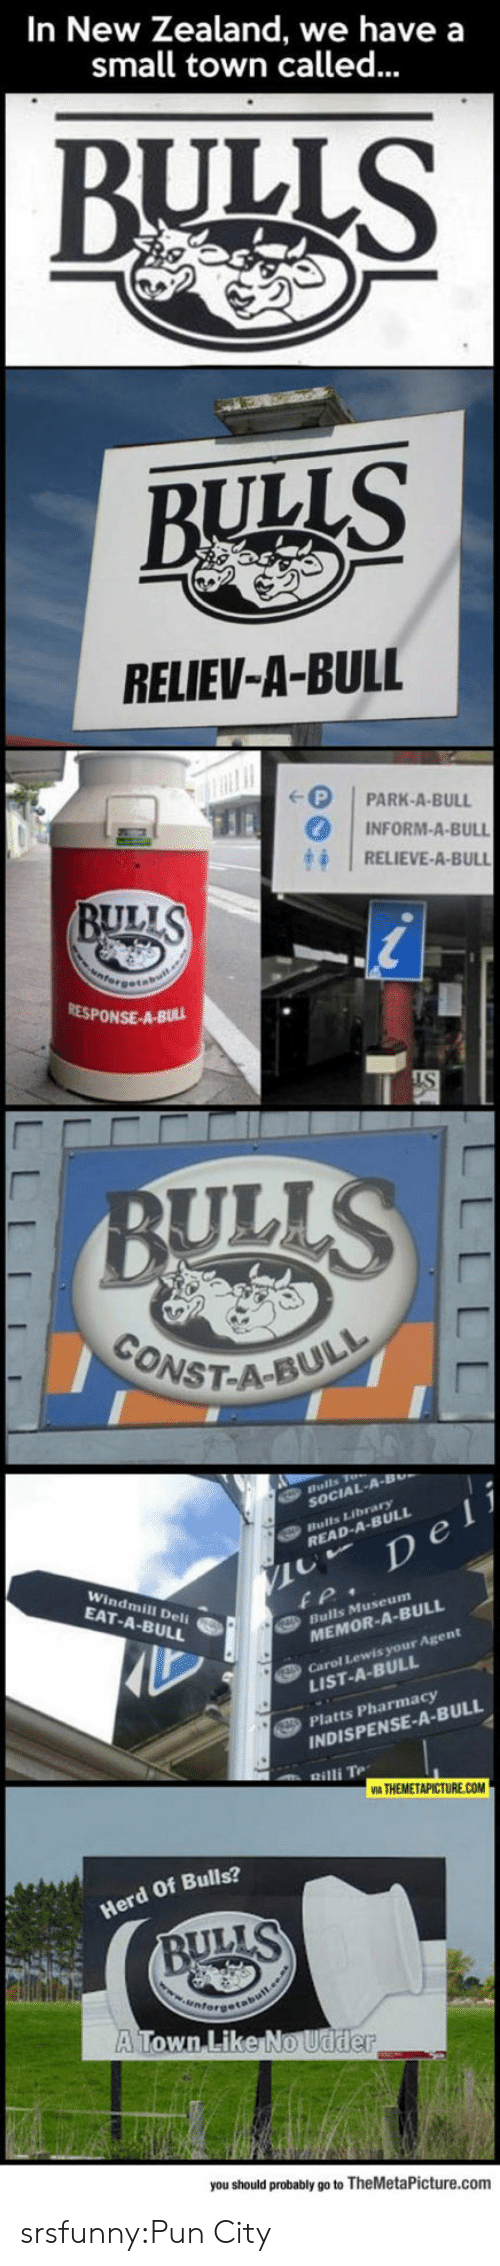 Relieve: In New Zealand, we have a  small town called...  BULLS  BULLS  RELIEV-A-BULL  (-( | PARK-A-BULL  0 | INFORM-A-BULL  忏1 RELIEVE-A-BULL  BUL  RESPONSE-A-Buu  CONST-AcE  ST-A-BUL  SOCIAL-A  READ-A-BULL  Windmill Deli  EAT-A-BULL  Bulls Museum  MEMOR-A-BULL  Carol Lewis your Agent  LIST-A-BULL  Platts Pharmacy  INDISPENSE-A-BULL  Herd Of Bulls?  ULLS  A Town Like  you should probably go to TheMetaPicture.comm srsfunny:Pun City